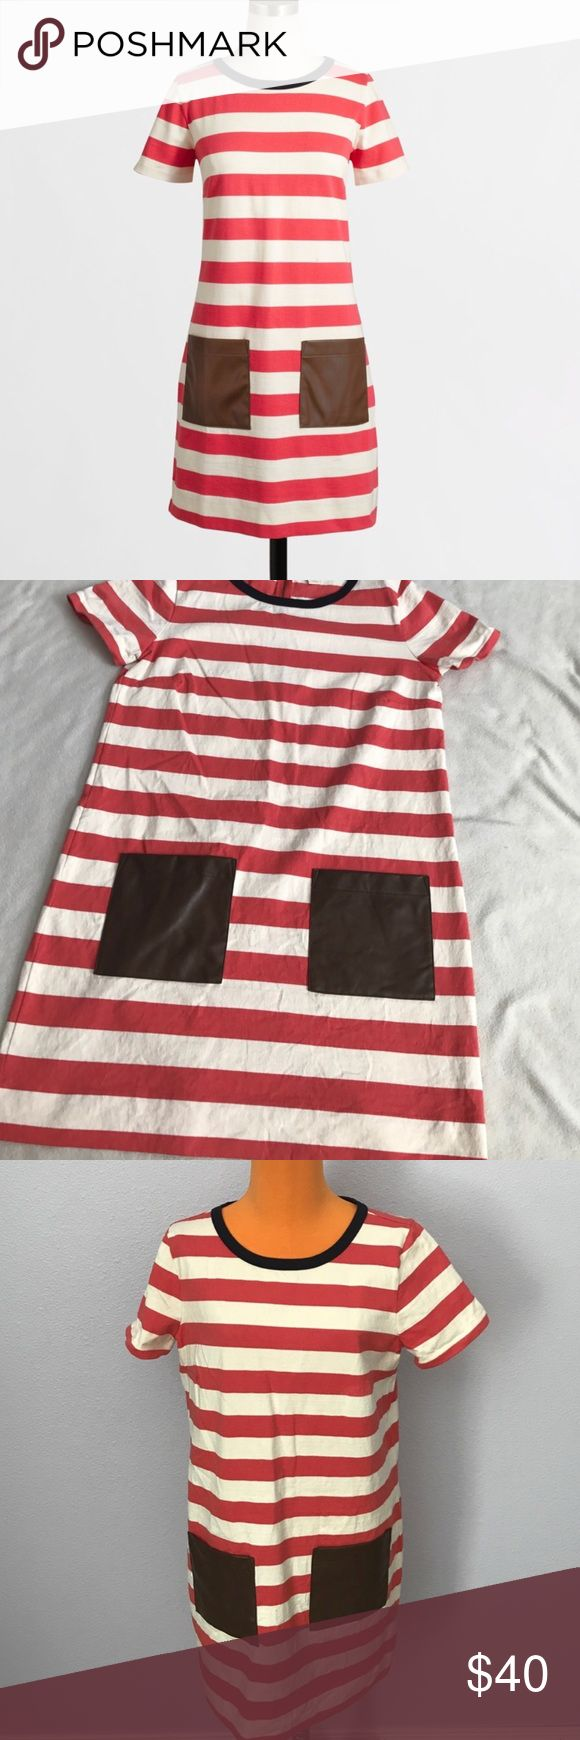 """J Crew Pink Stripe Faux Leather Pocket Dress 34"""" length 19.5"""" armpit to armpit. Stripe with a melon pink color. Faux leather pocket detailing. Navy blue color around collar. Excellent condition. T shirt style dress. Small zipper on back middle. Bundle 2+ items for a discount J. Crew Dresses Midi"""